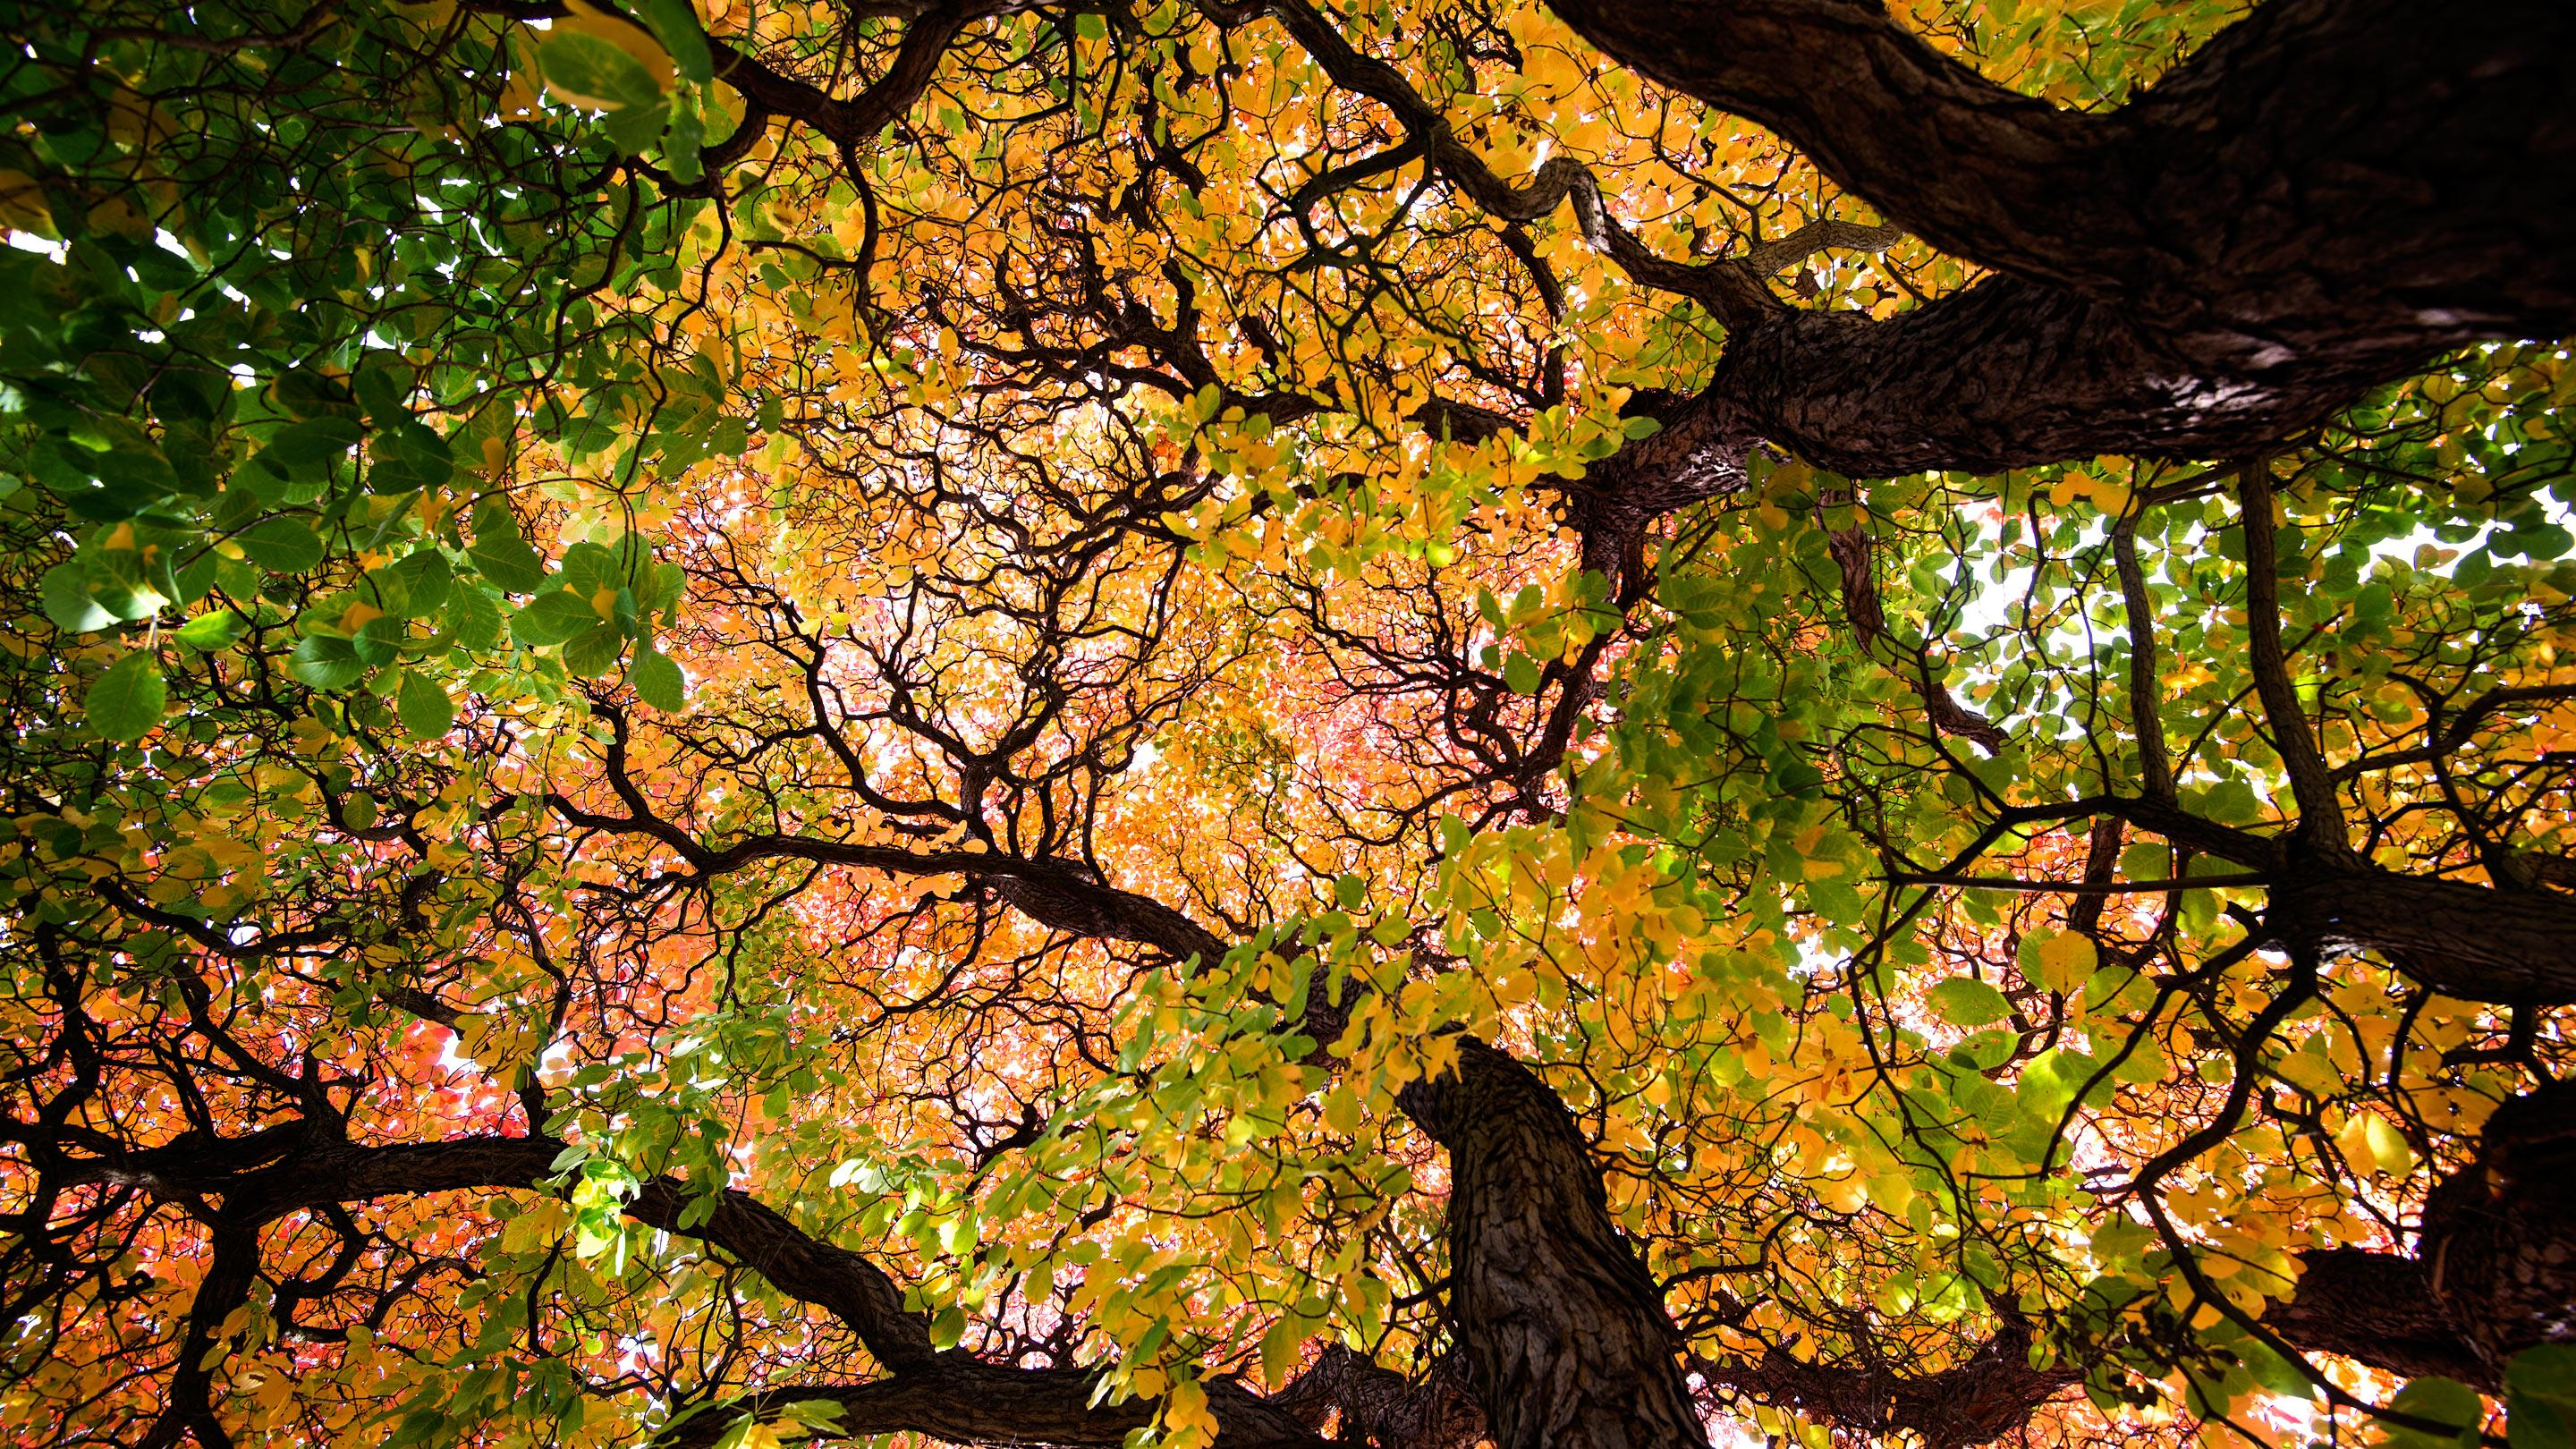 Brightly coloured autumn leaves in a tree canopy